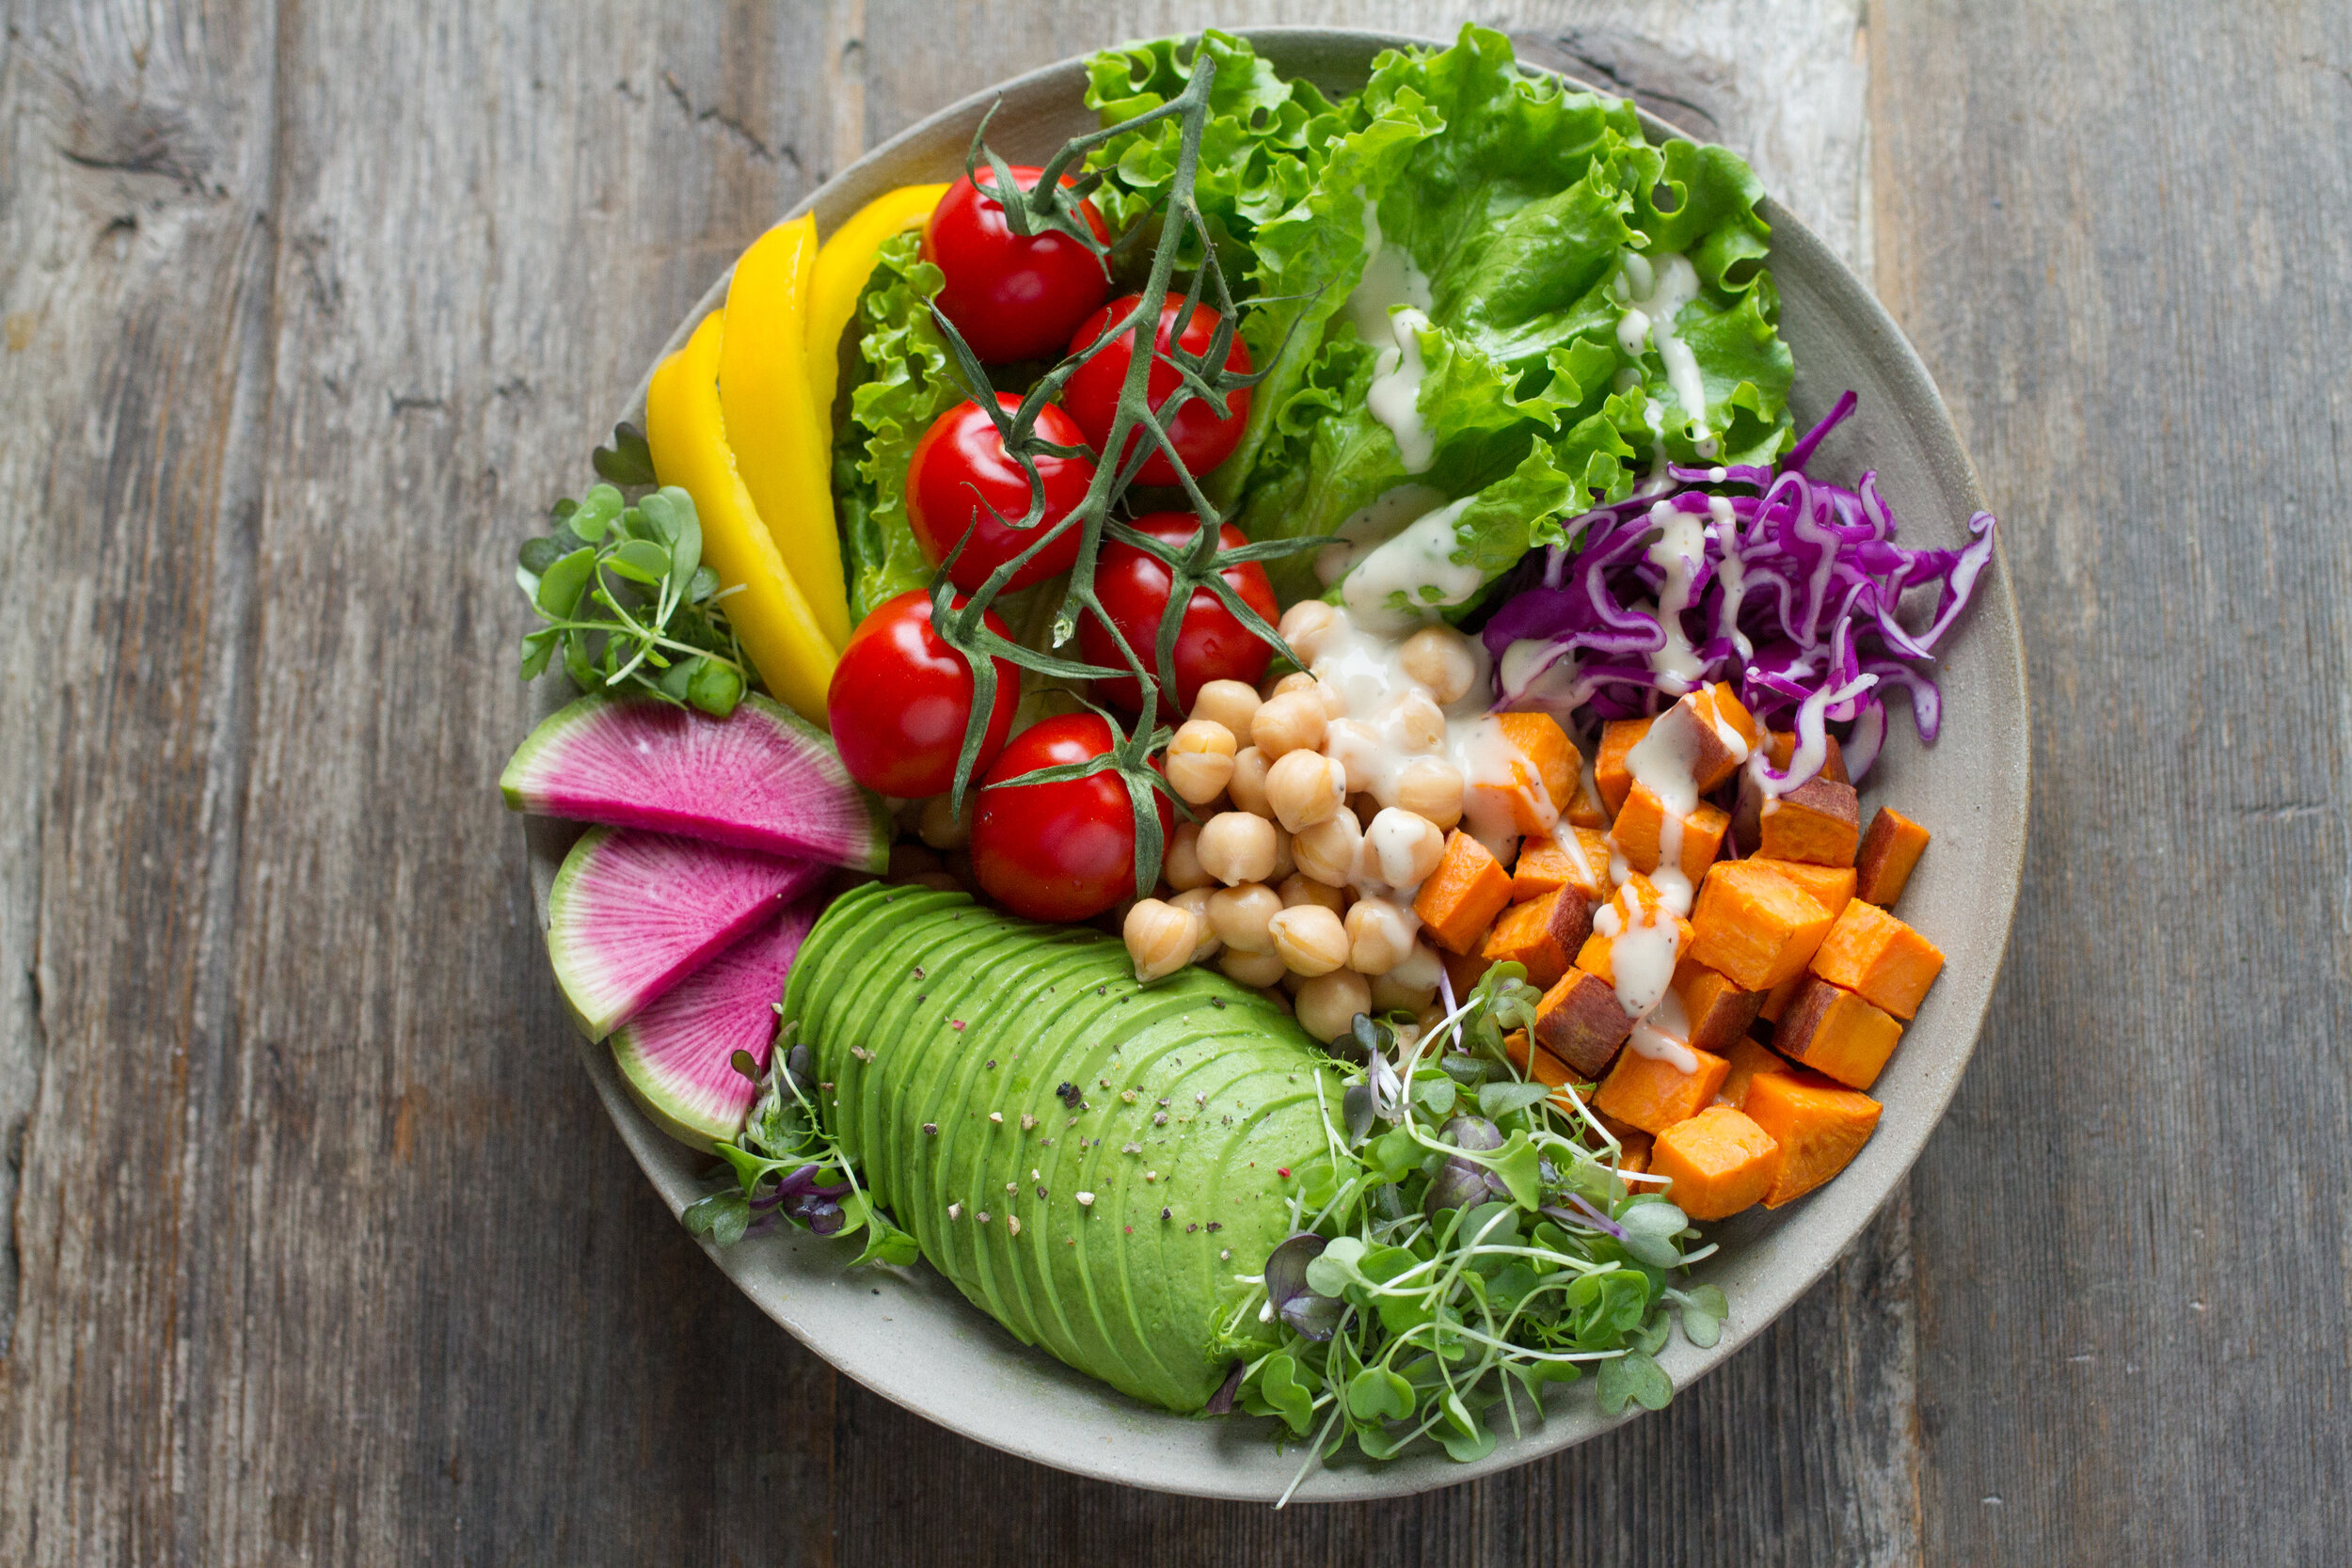 """Instead of replacing bread or pasta with a """"gluten free"""" alternative, overtime aim to ditch these foods altogether. Instead, think veggies, the color of the rainbow - rich in antioxidants and polyphenols, these foods will help you more than you realize."""